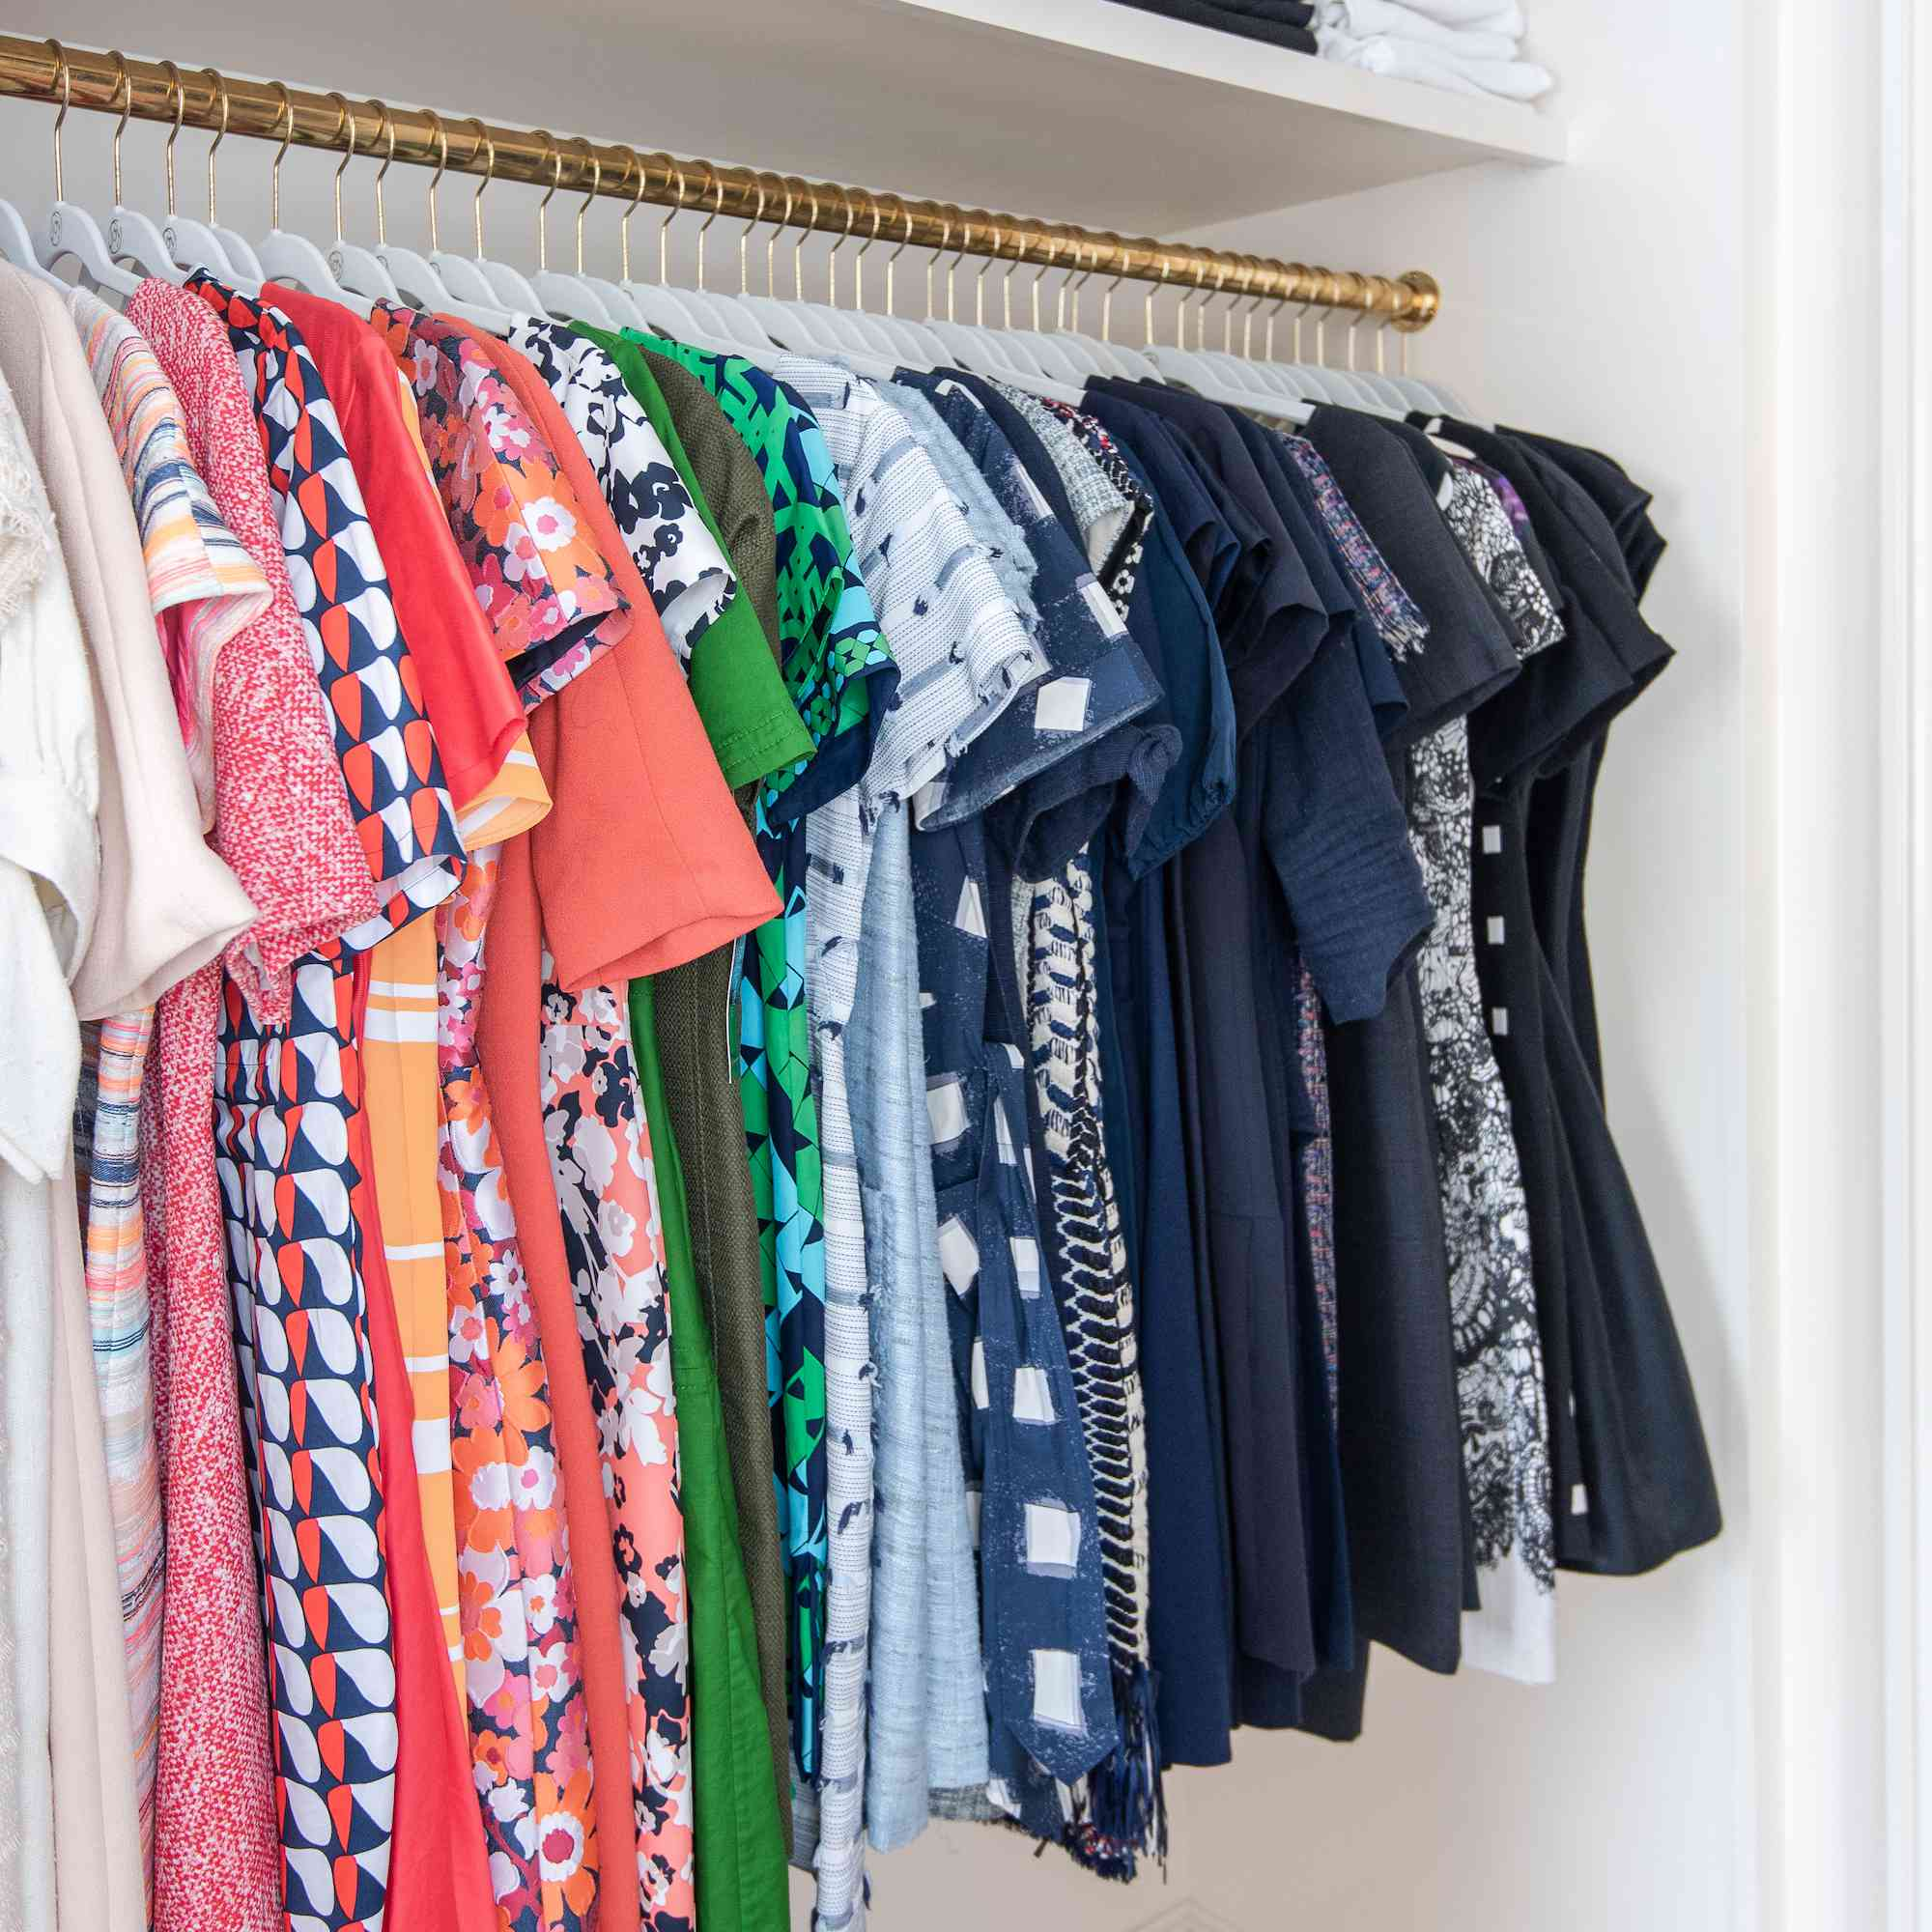 Closet with dresses organized by color